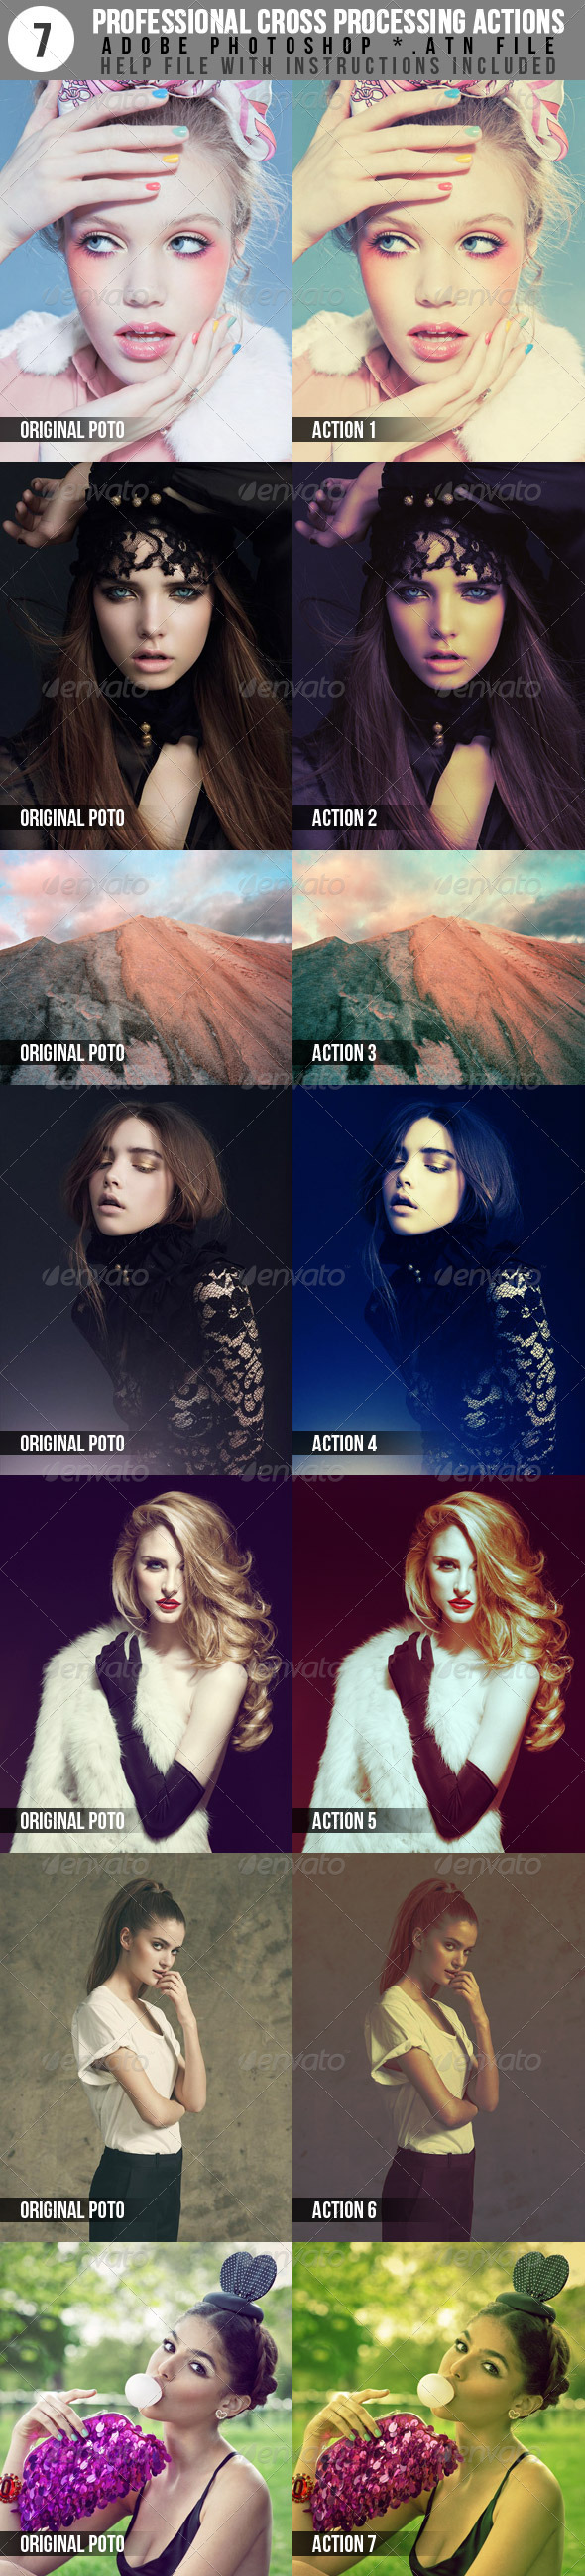 GraphicRiver 7 Professional Cross Processing Photo Actions 2792765